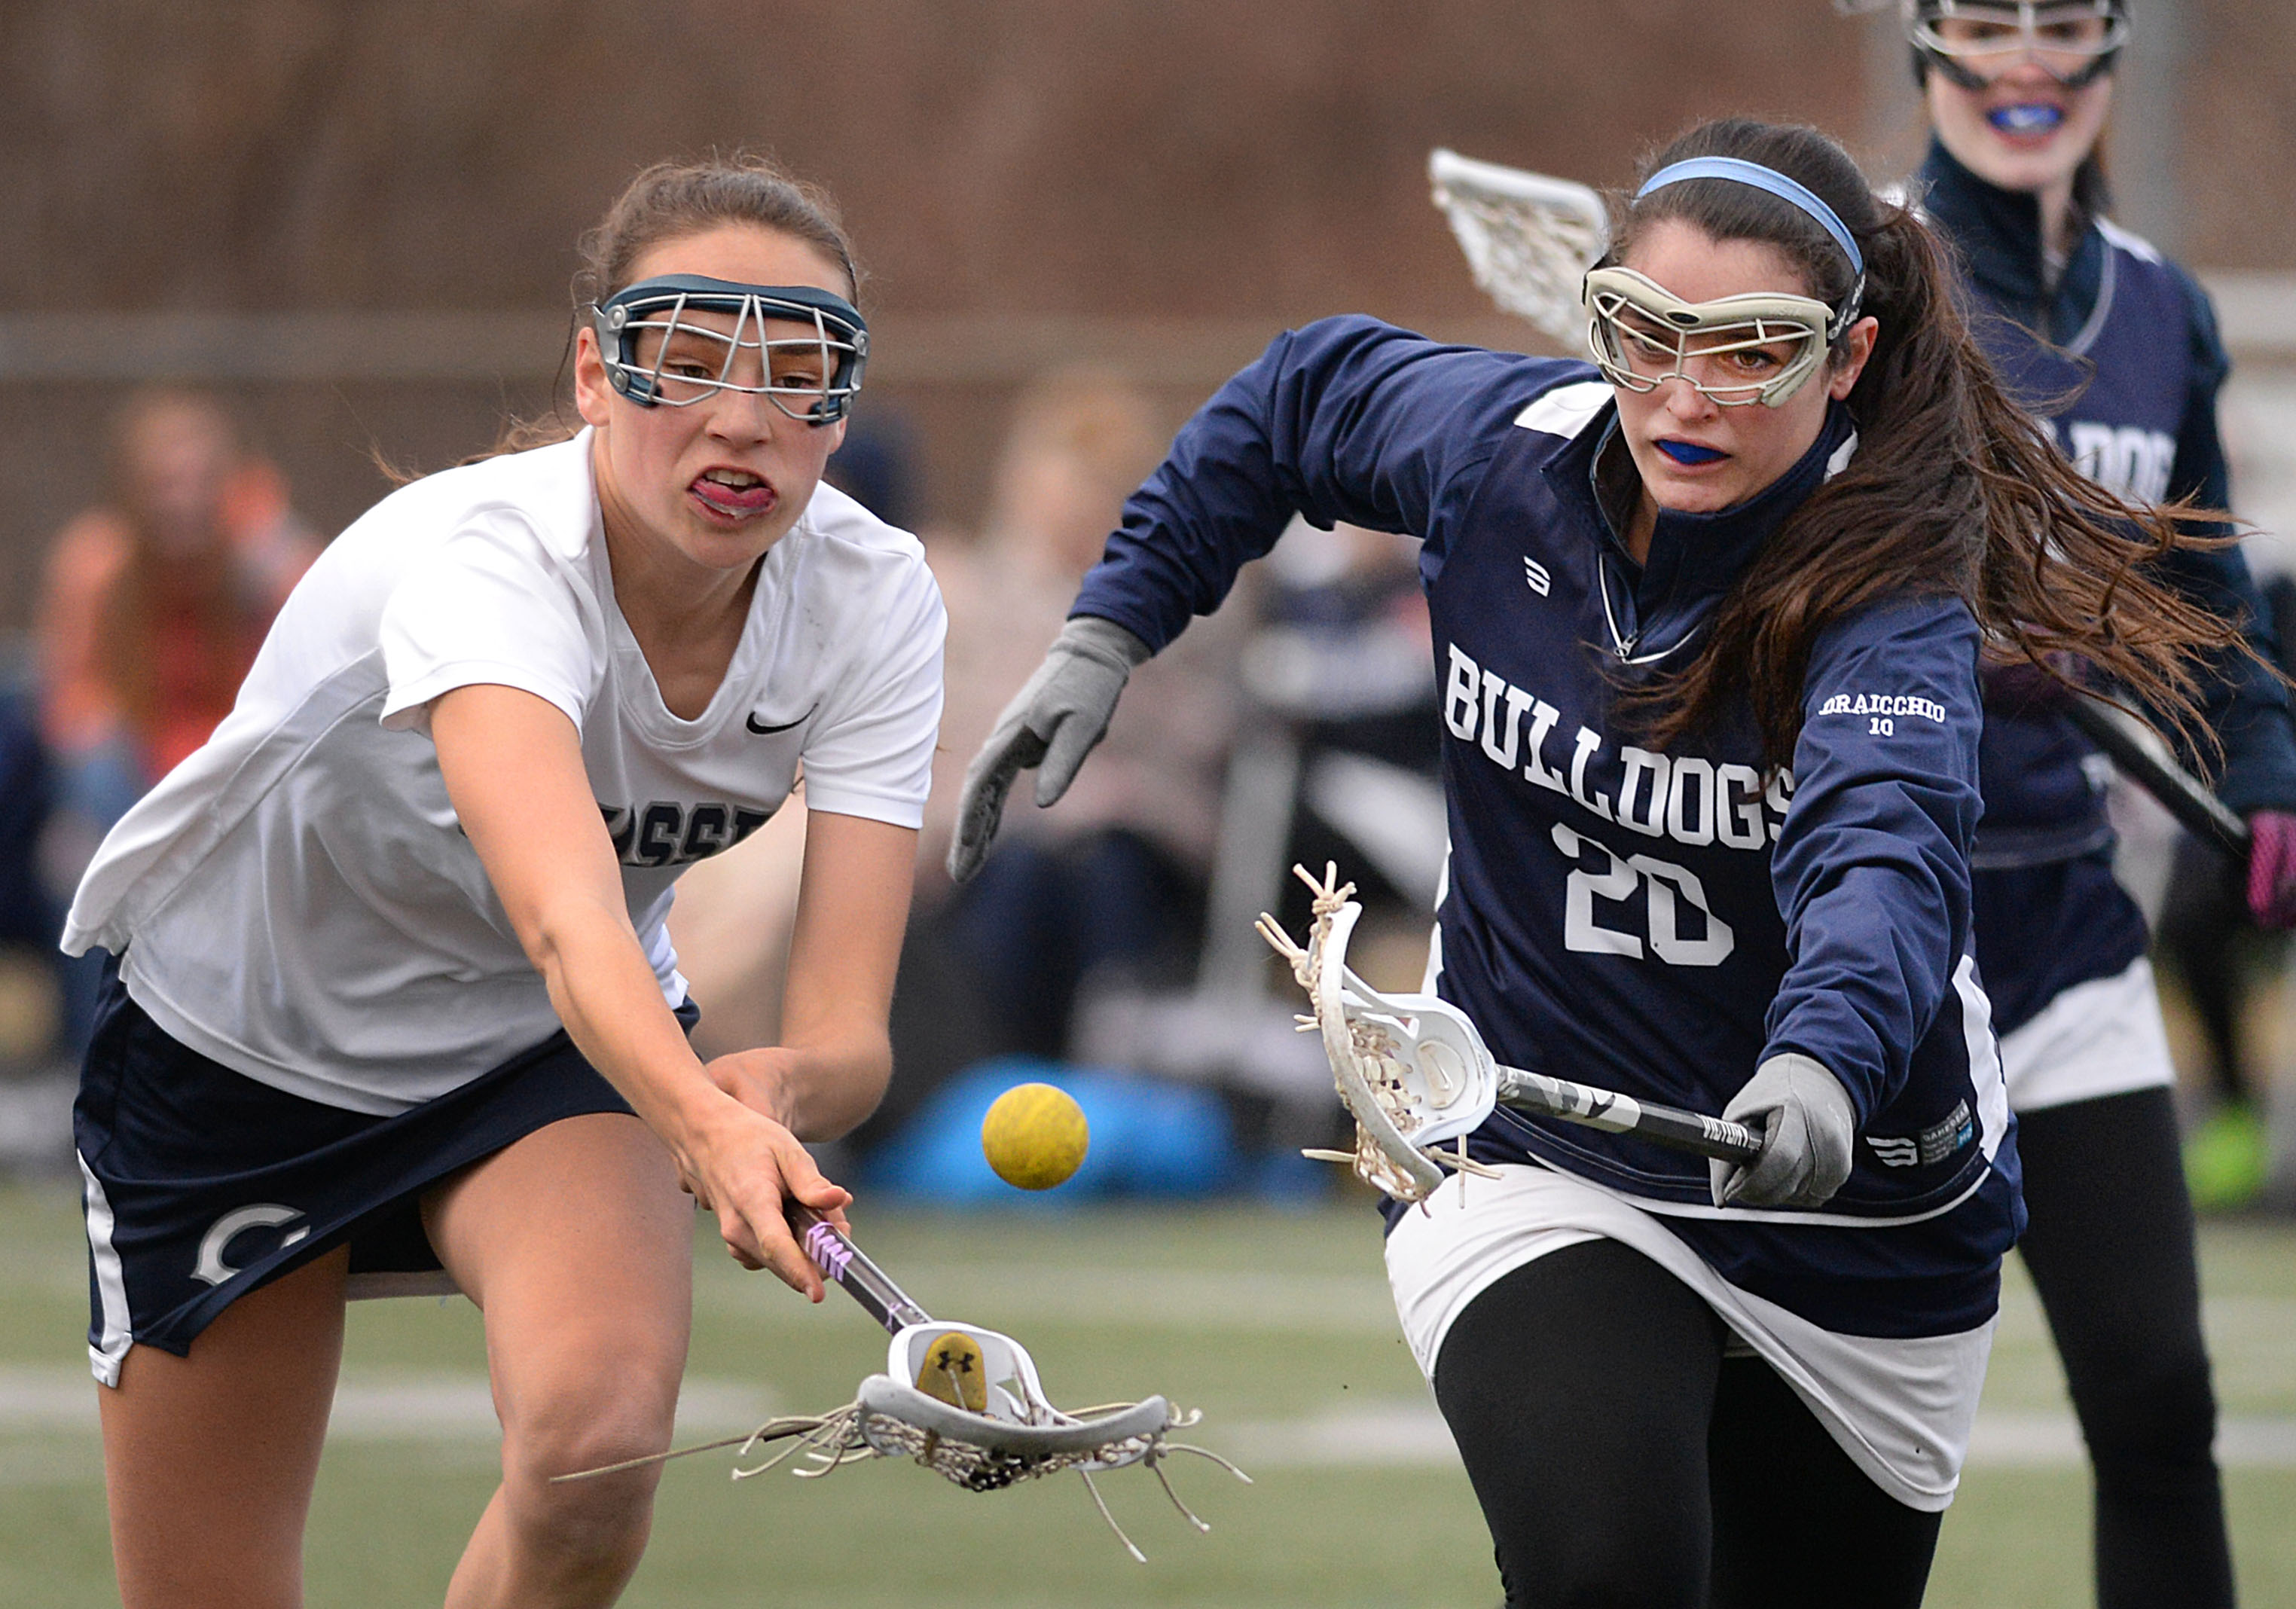 Cohasset girls' lacrosse focuses on the start, and the